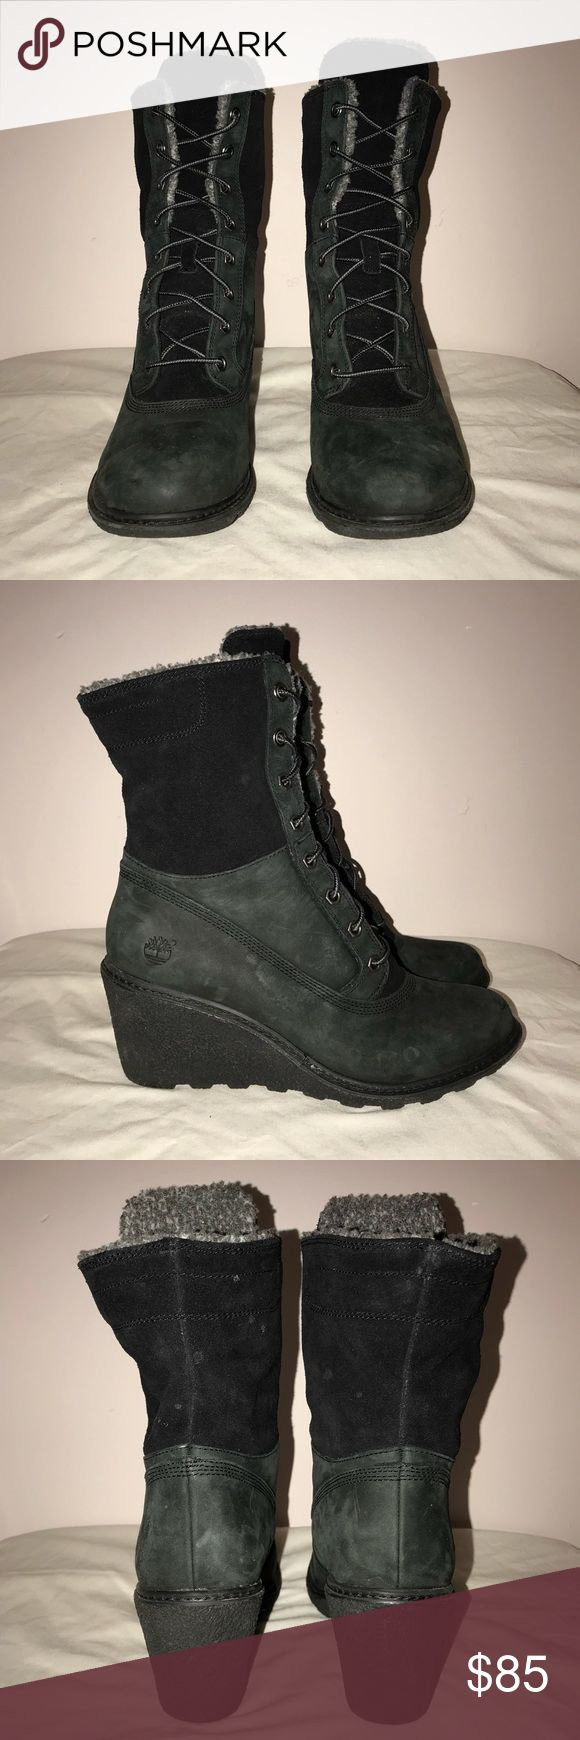 """Timberland winter boots Wedge heel boots, hardly worn. A couple dots that can come right off. About 2.5"""" heel. True to size, 100% suede leather Timberland Shoes Winter & Rain Boots"""